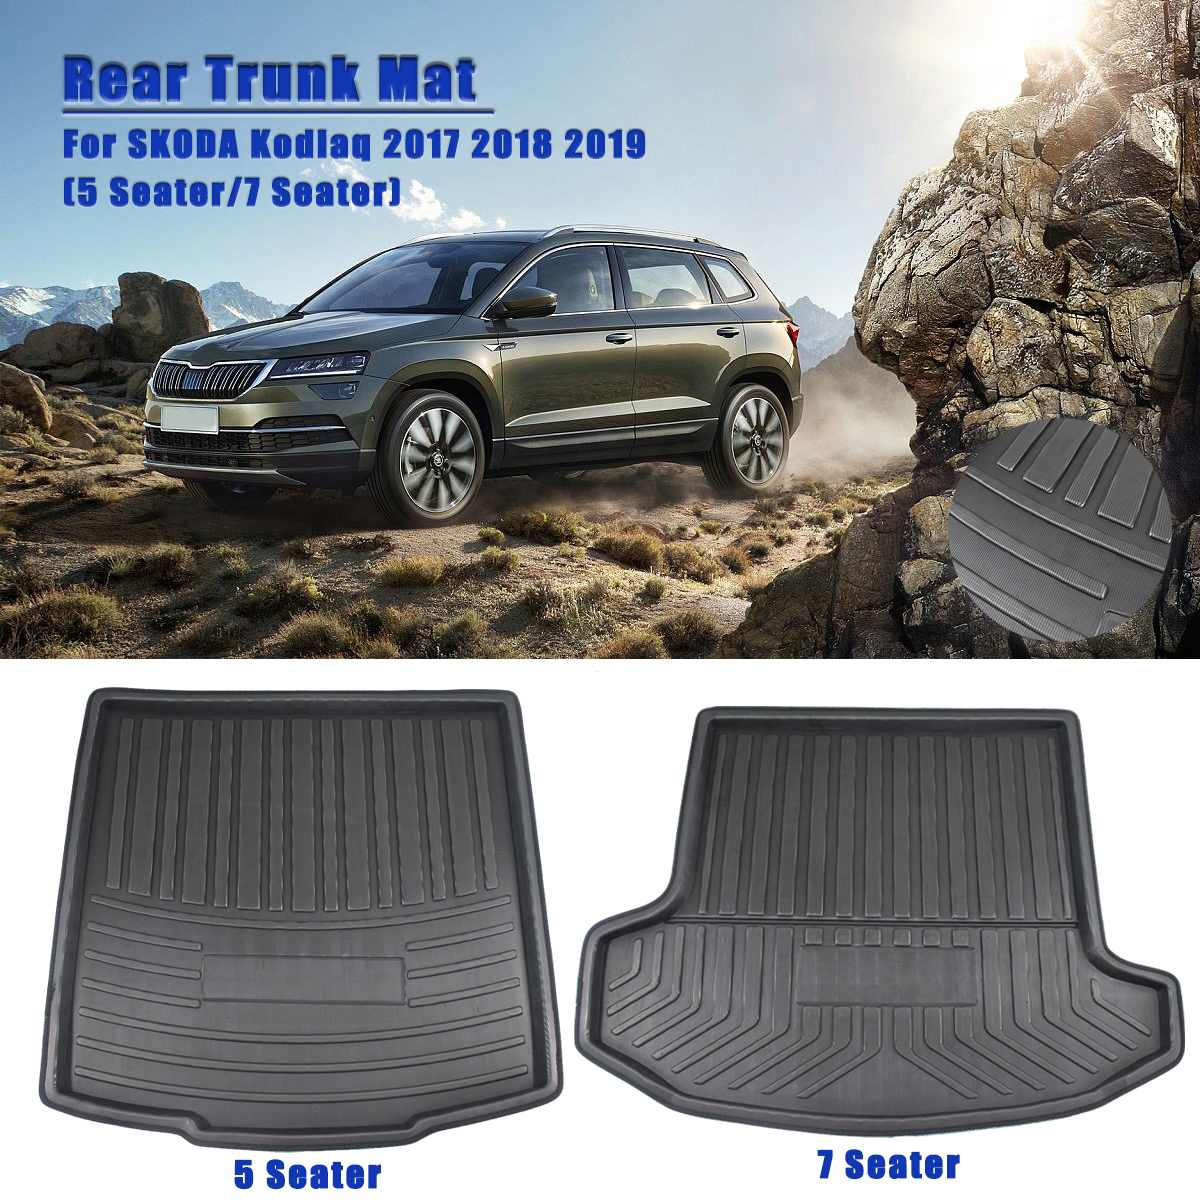 Cargo Liner Boot Tray Rear Trunk Cover Matt Mat Floor Carpet Kick Pad For SKODA Kodiaq 5 7 Seat Seater 2017 2018 2019